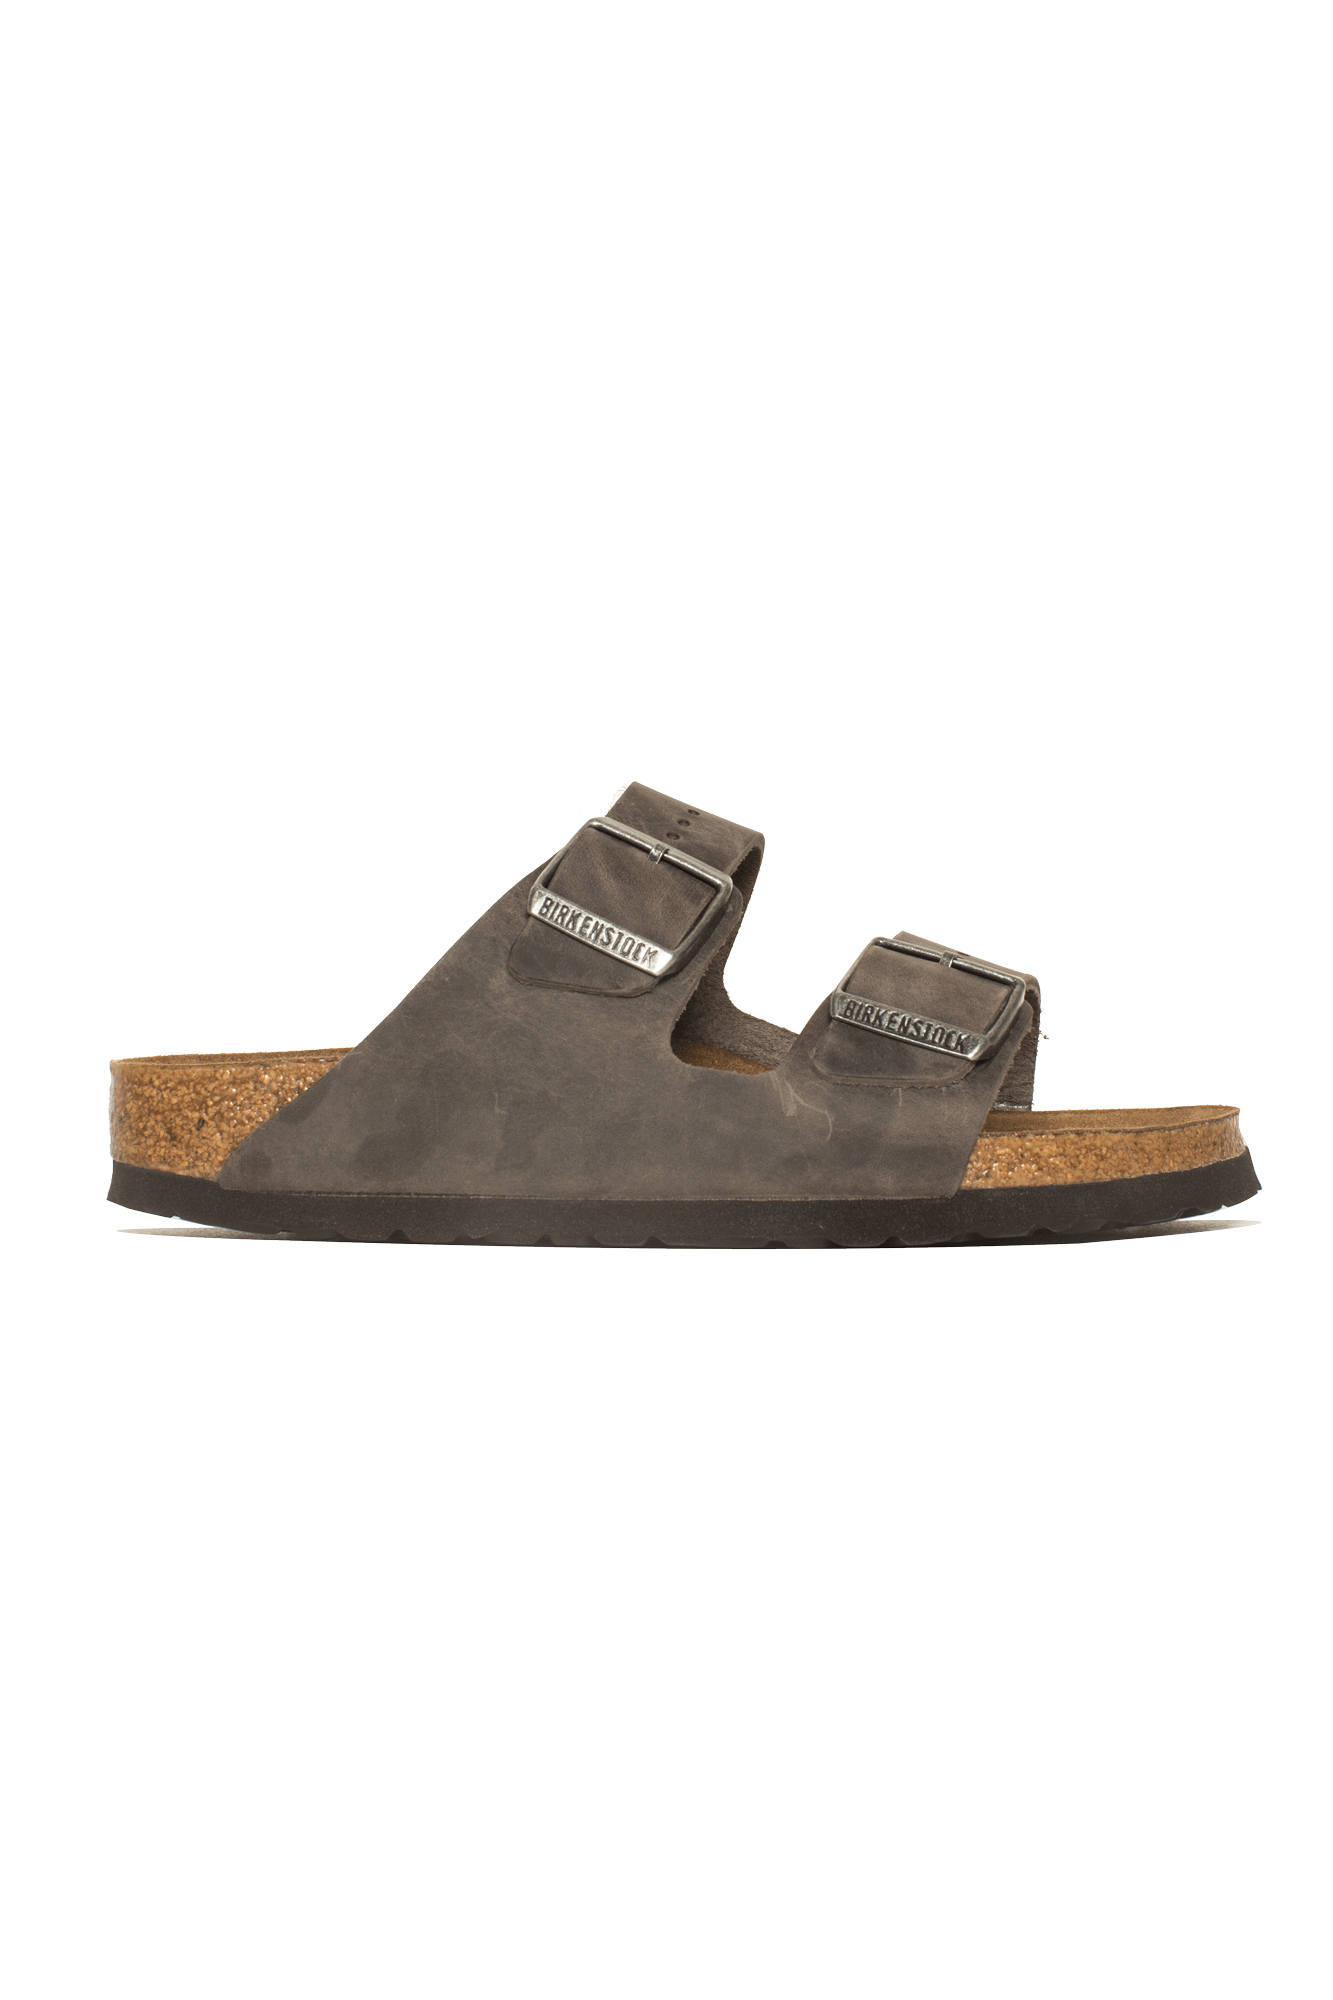 Birkenstock Sandals & Slides Arizona SFB Brown 1013645#000#IRON#4 - One Block Down